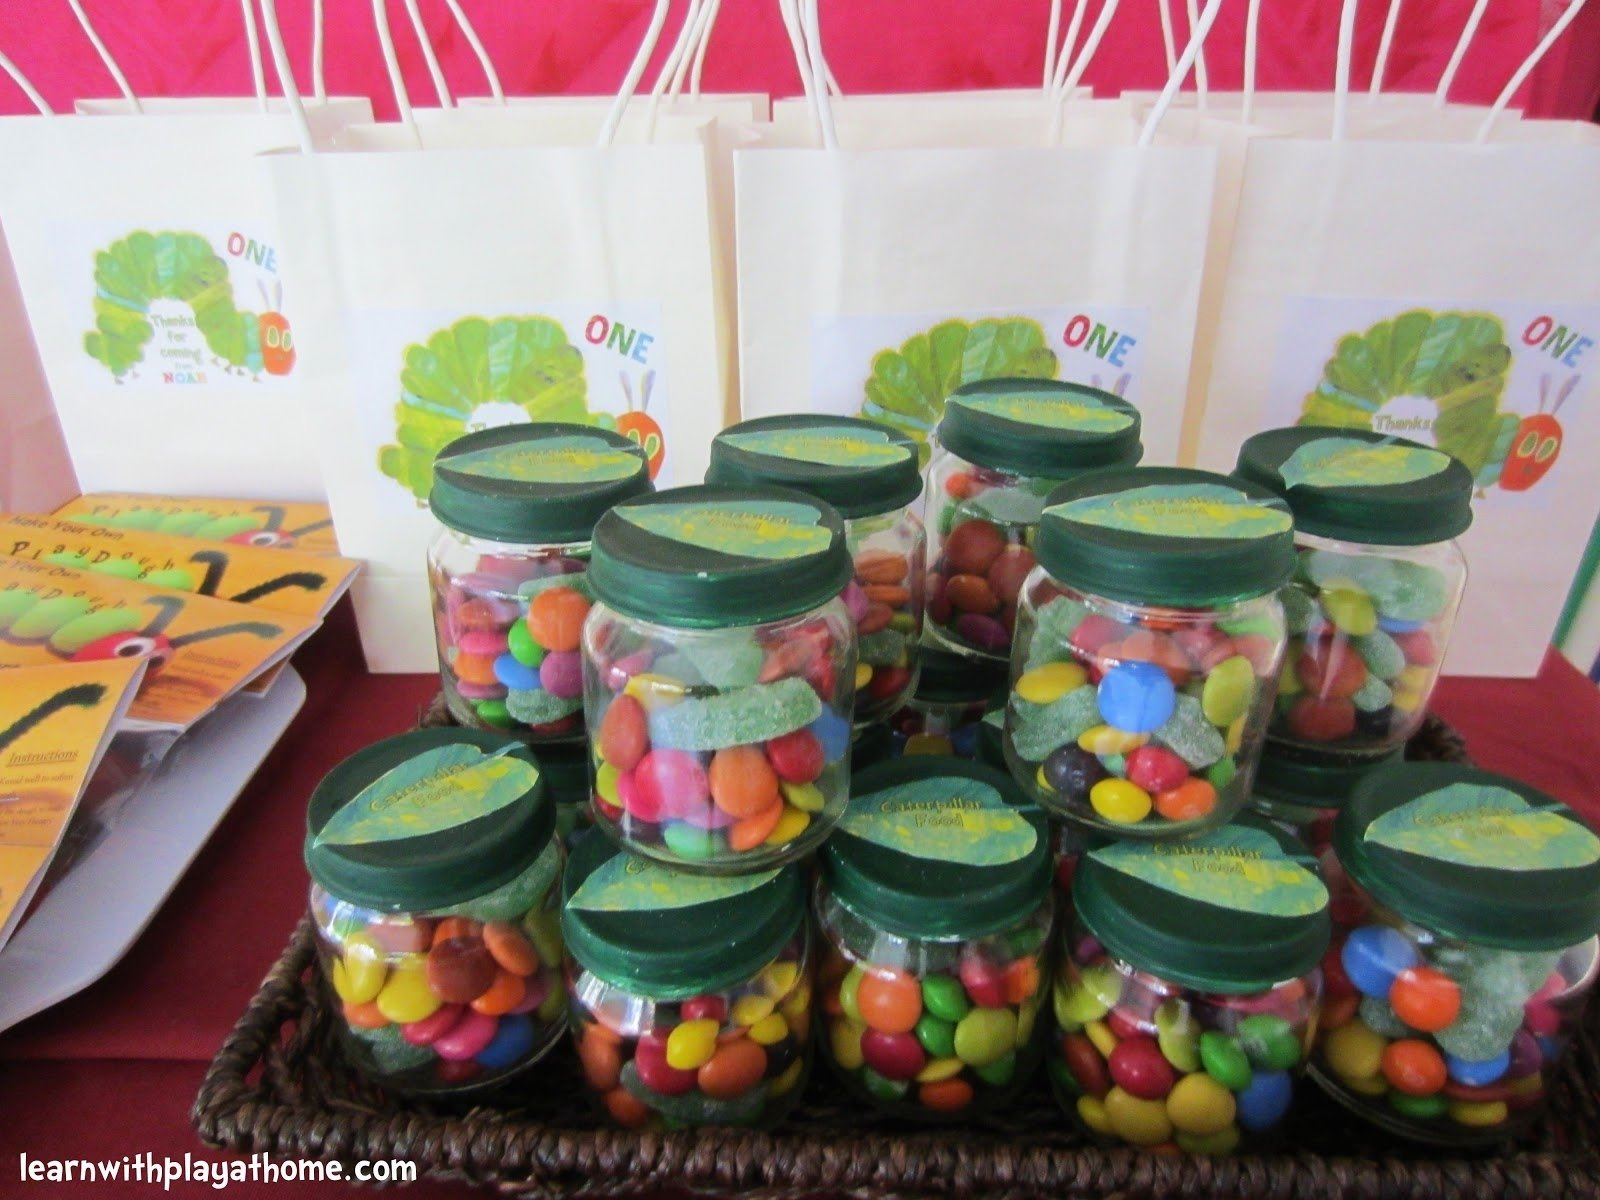 10 Attractive The Very Hungry Caterpillar Party Ideas learn with play at home diy party favours 2020